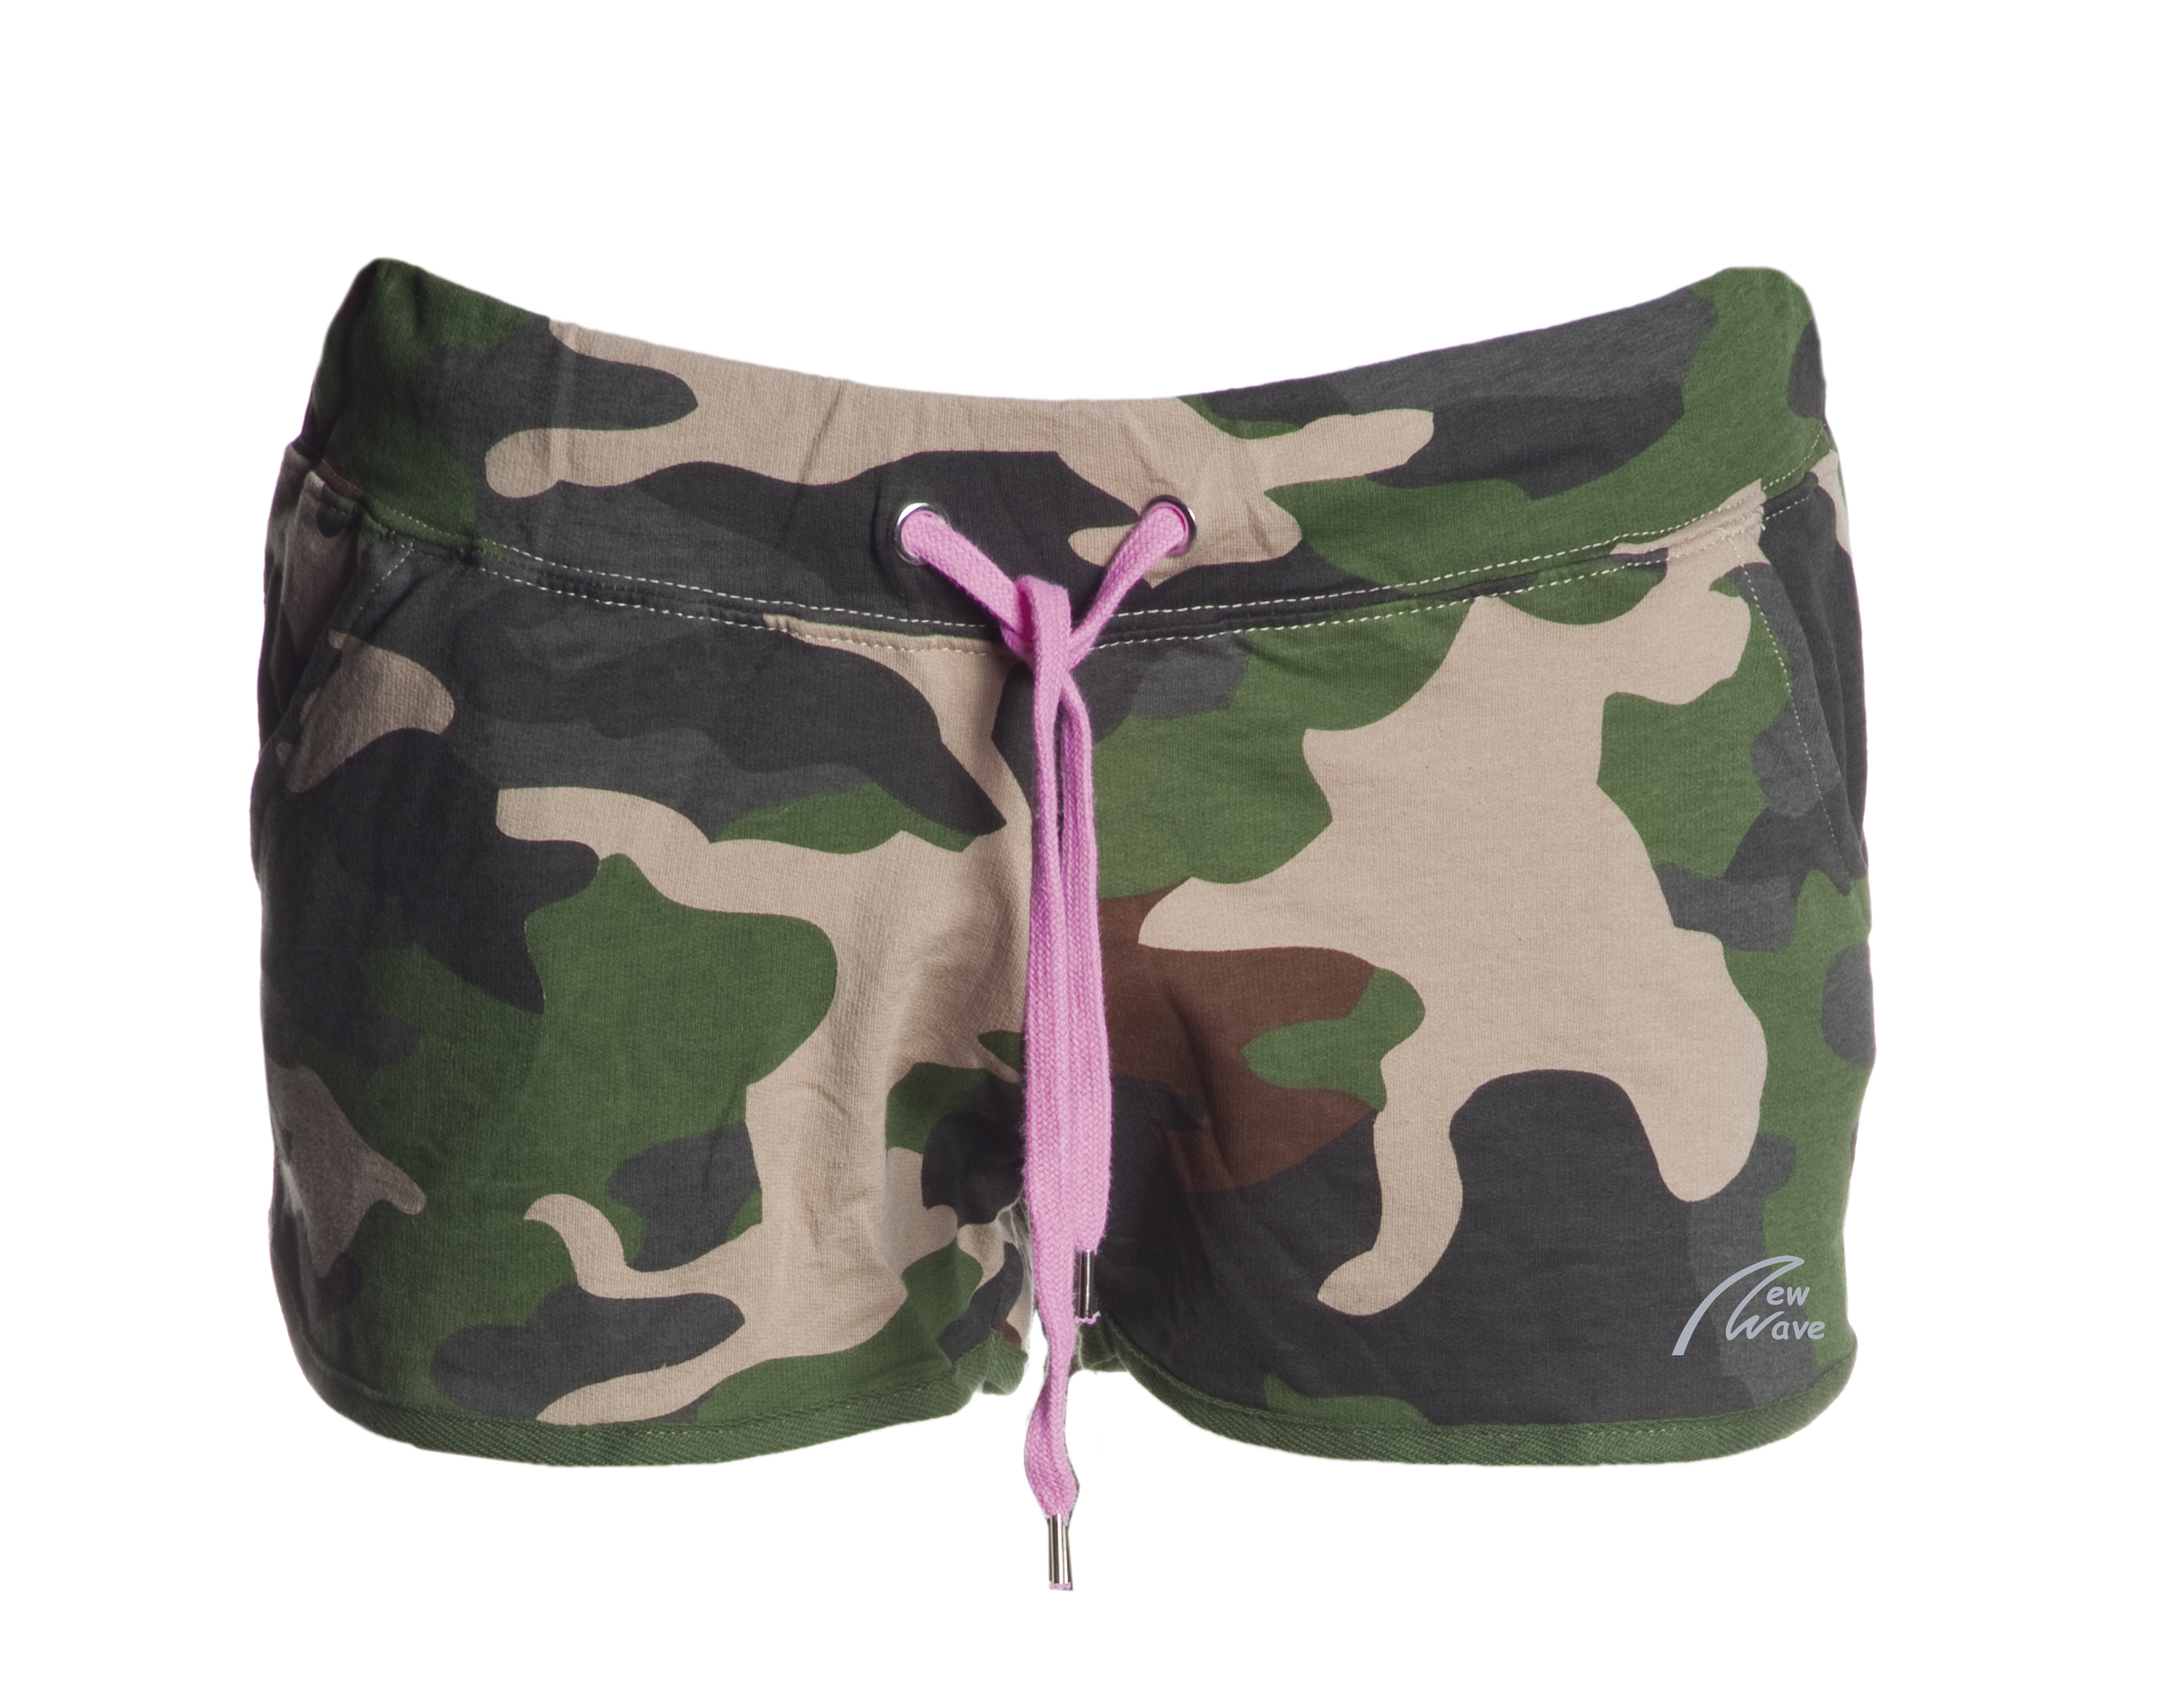 Retro Sport Shorts - Lady camouflage